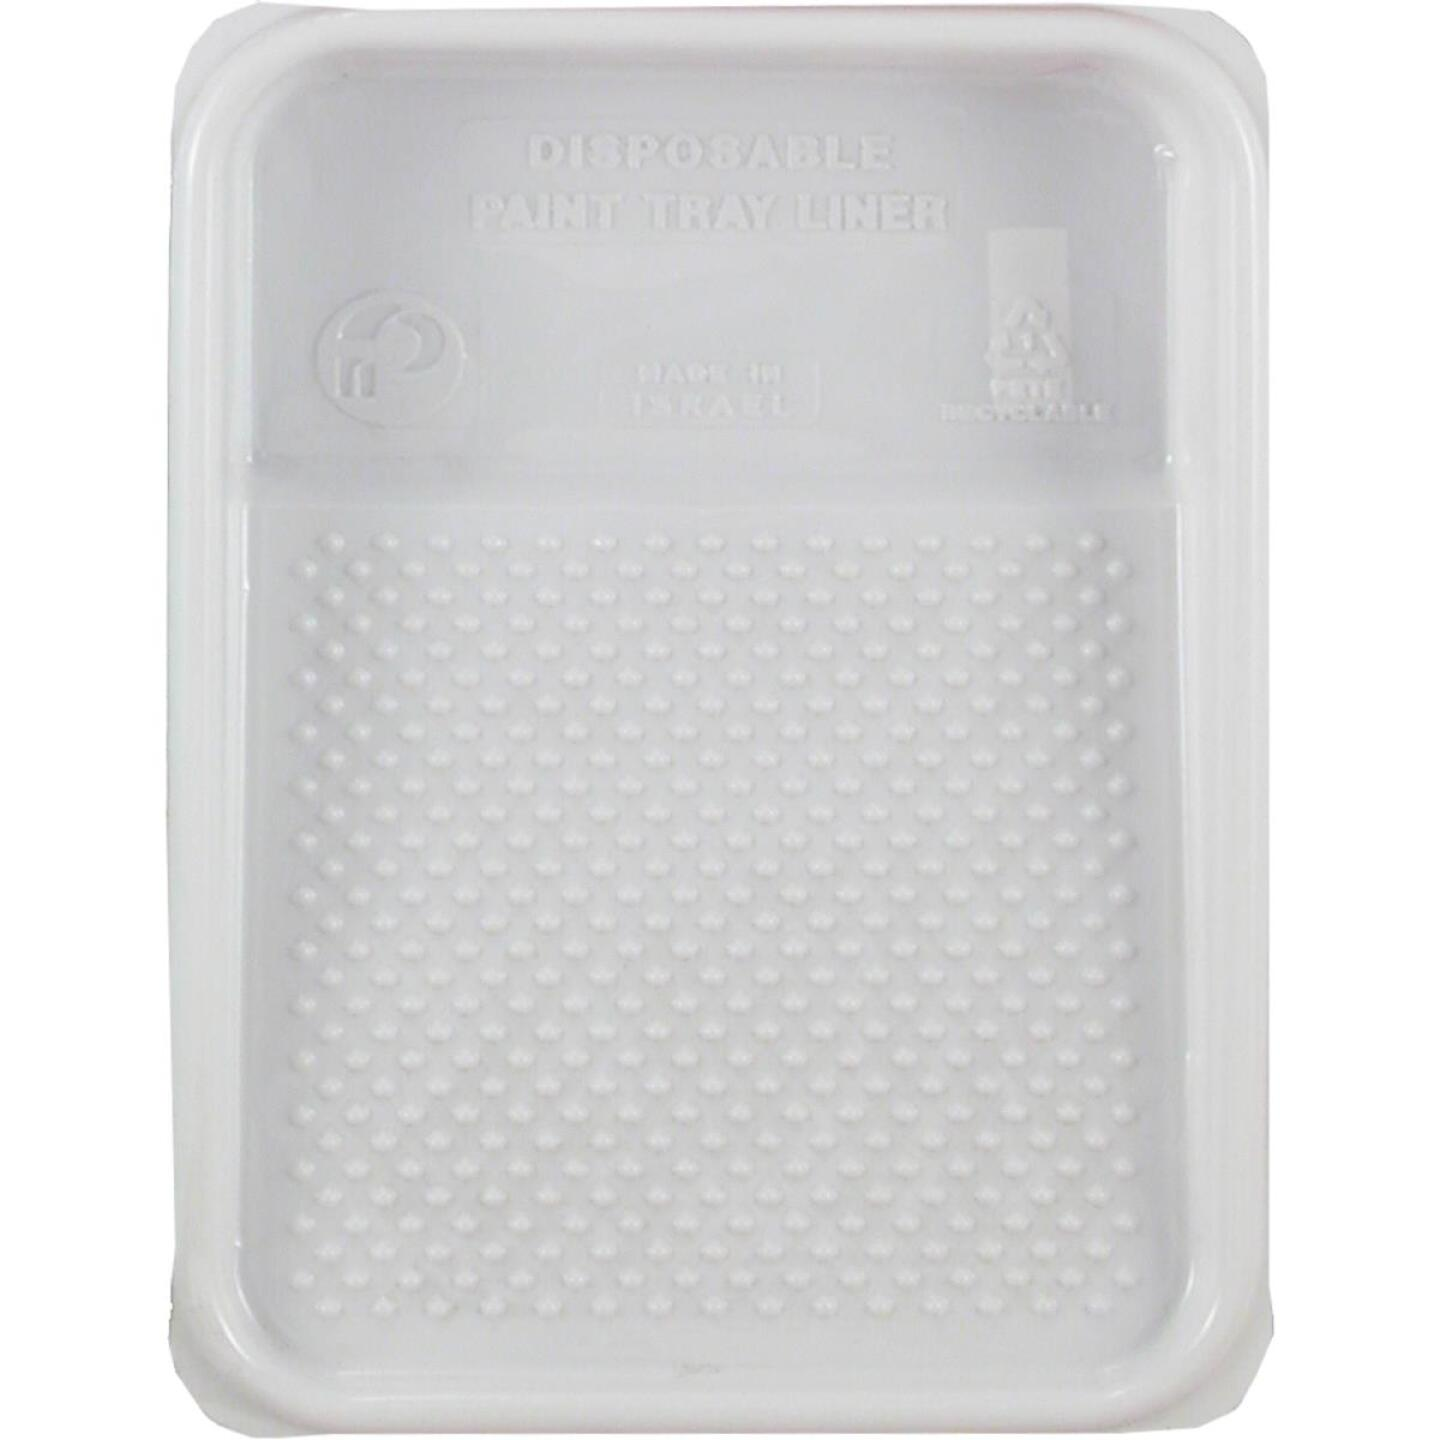 Premier 9 In. Solvent Resistant Paint Tray Liner Image 1